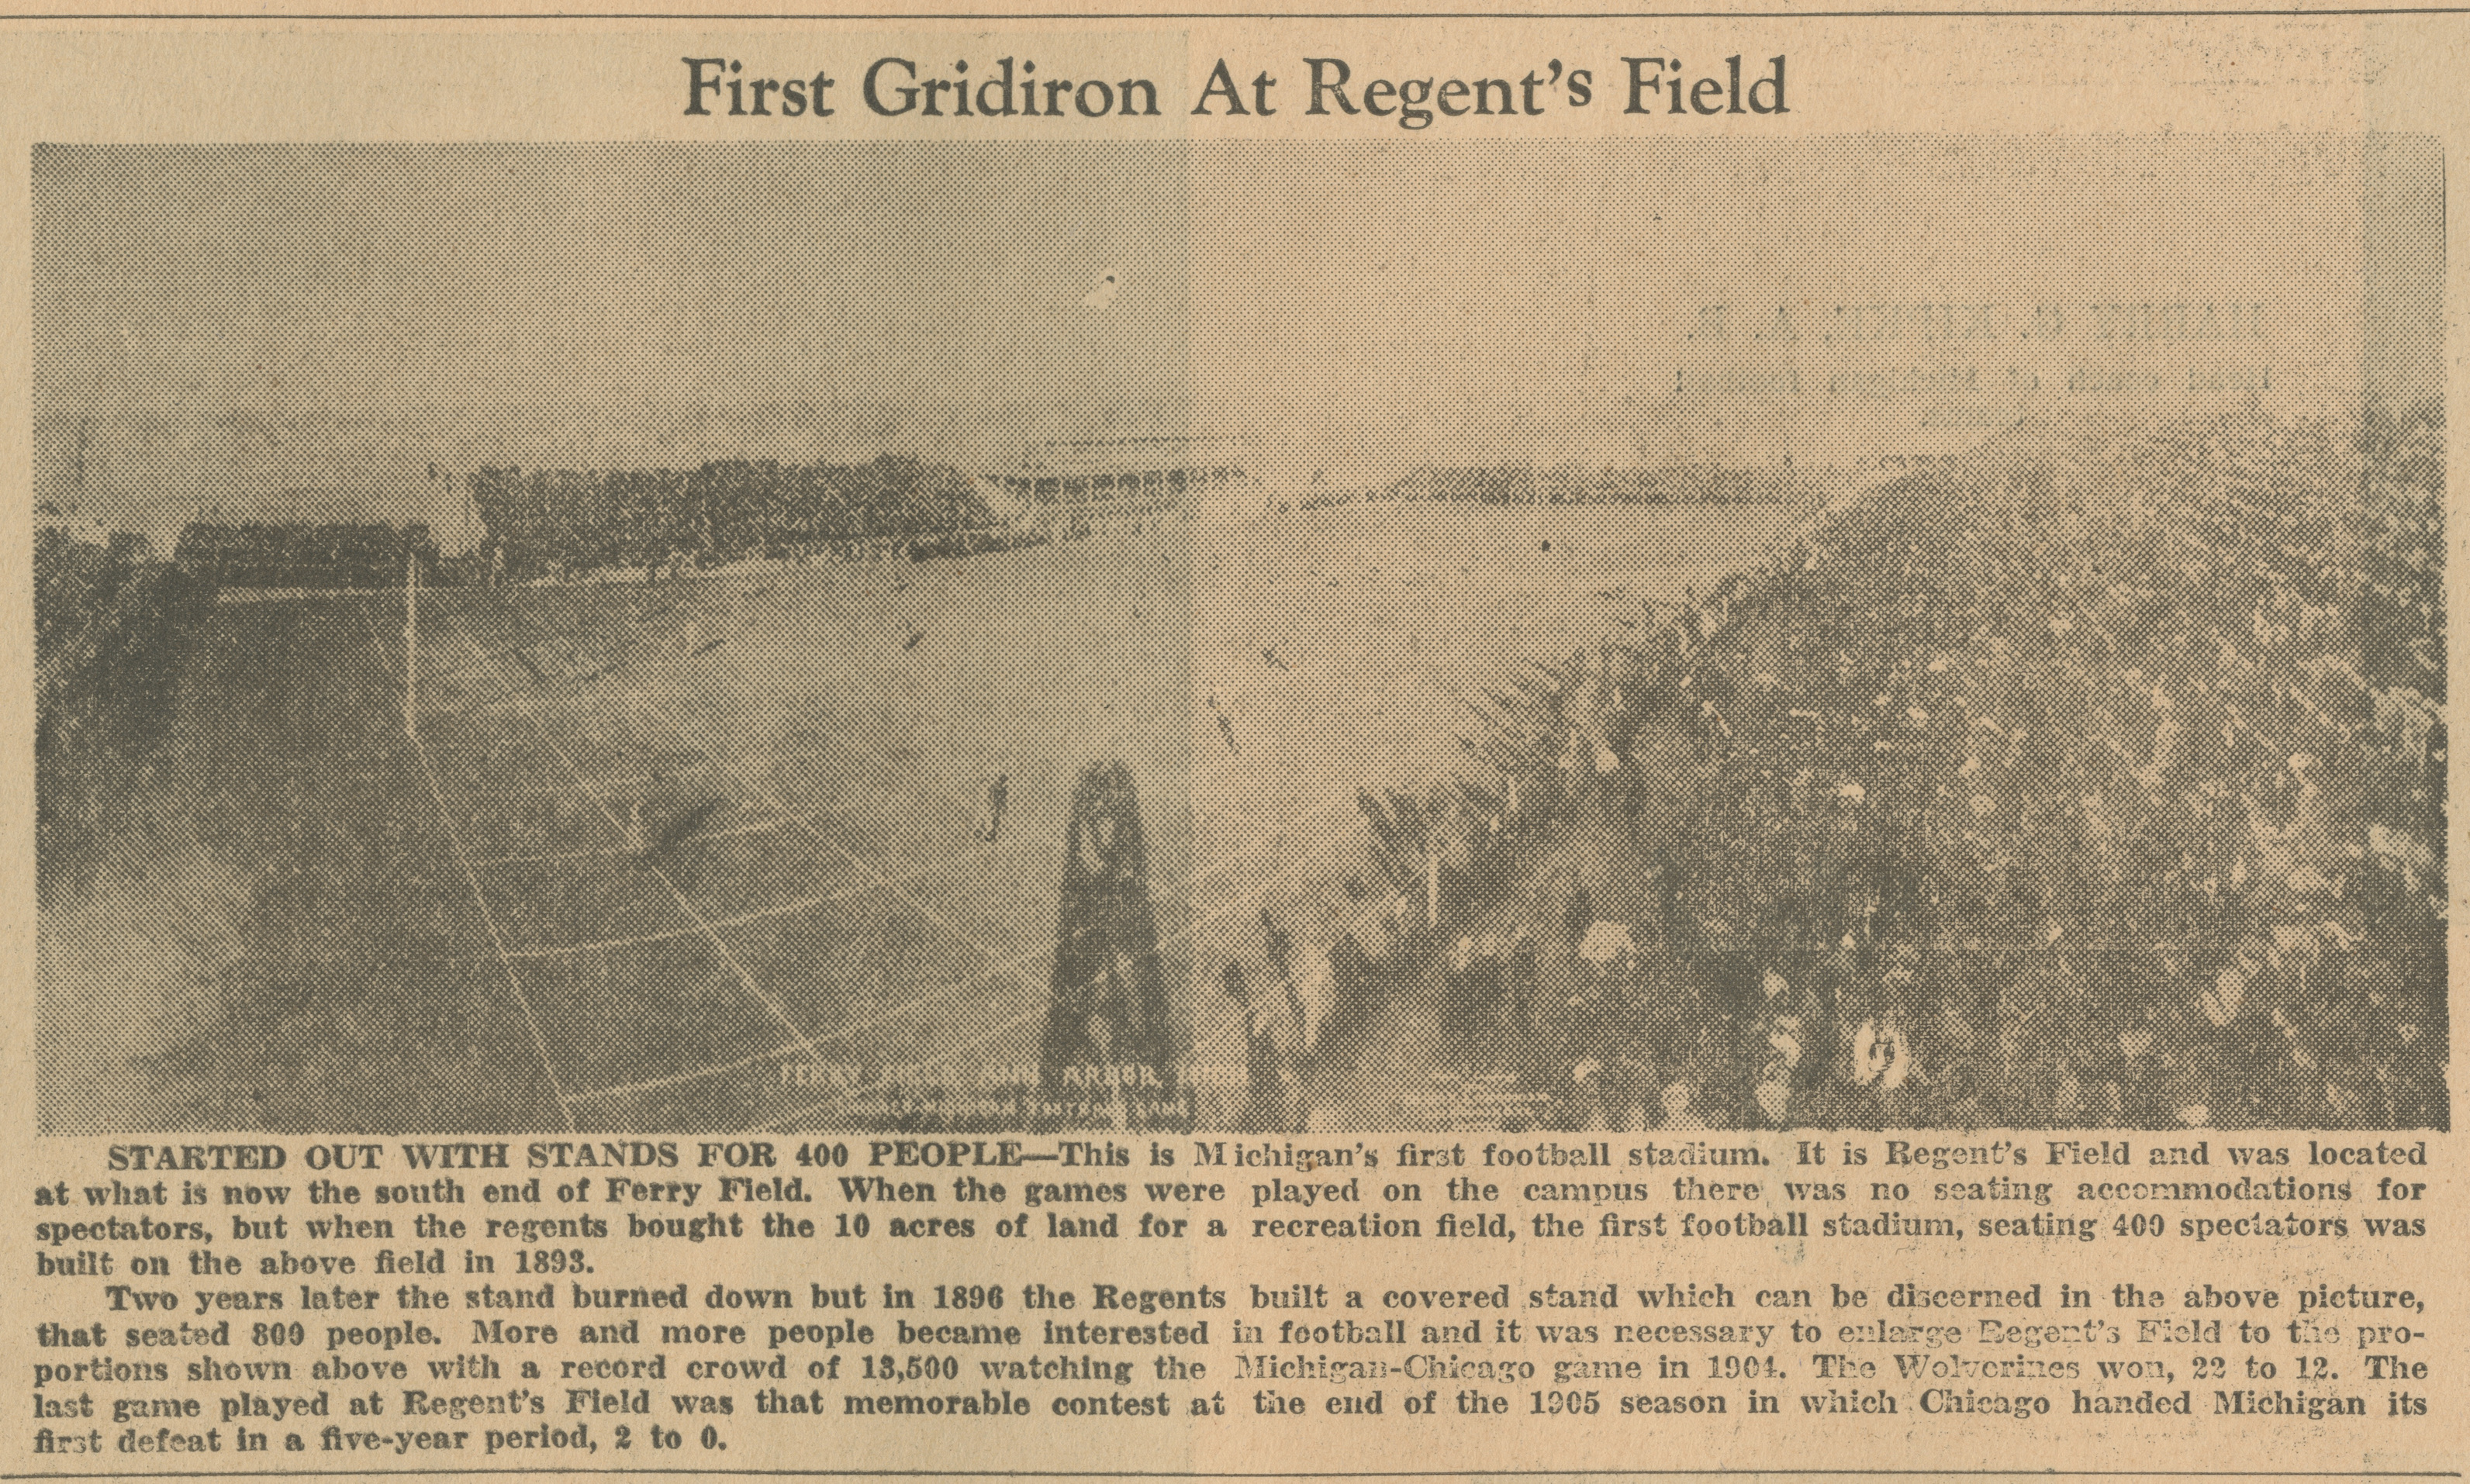 First Gridiron At Regent's Field image